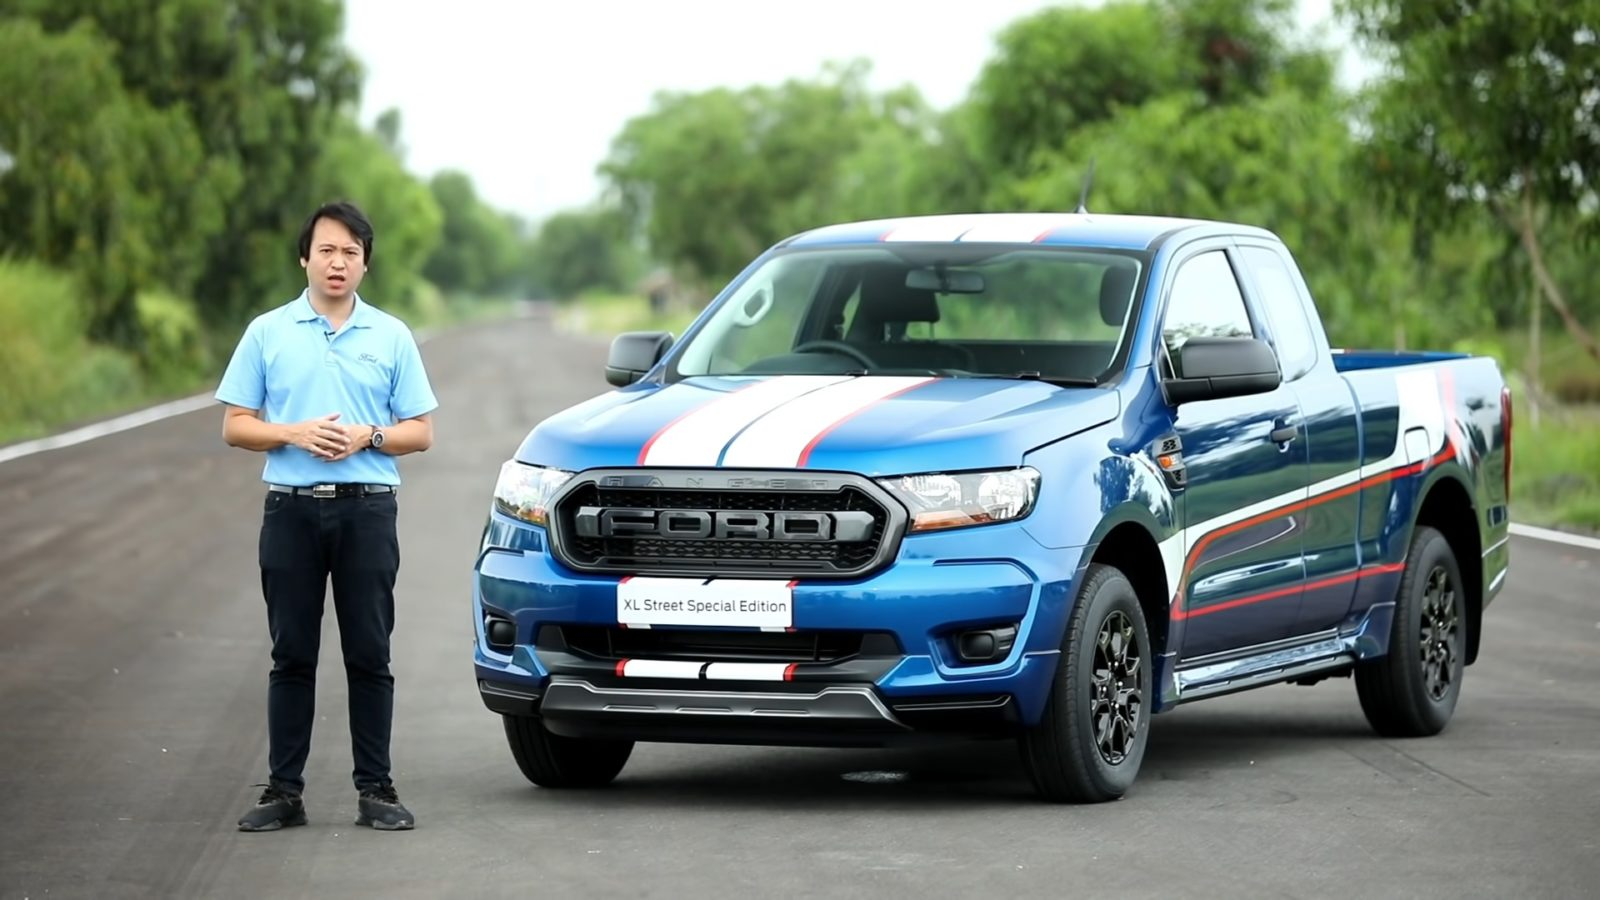 ford-ranger-gets-diesel-powered,-manual-equipped-special-edition-in-thailand